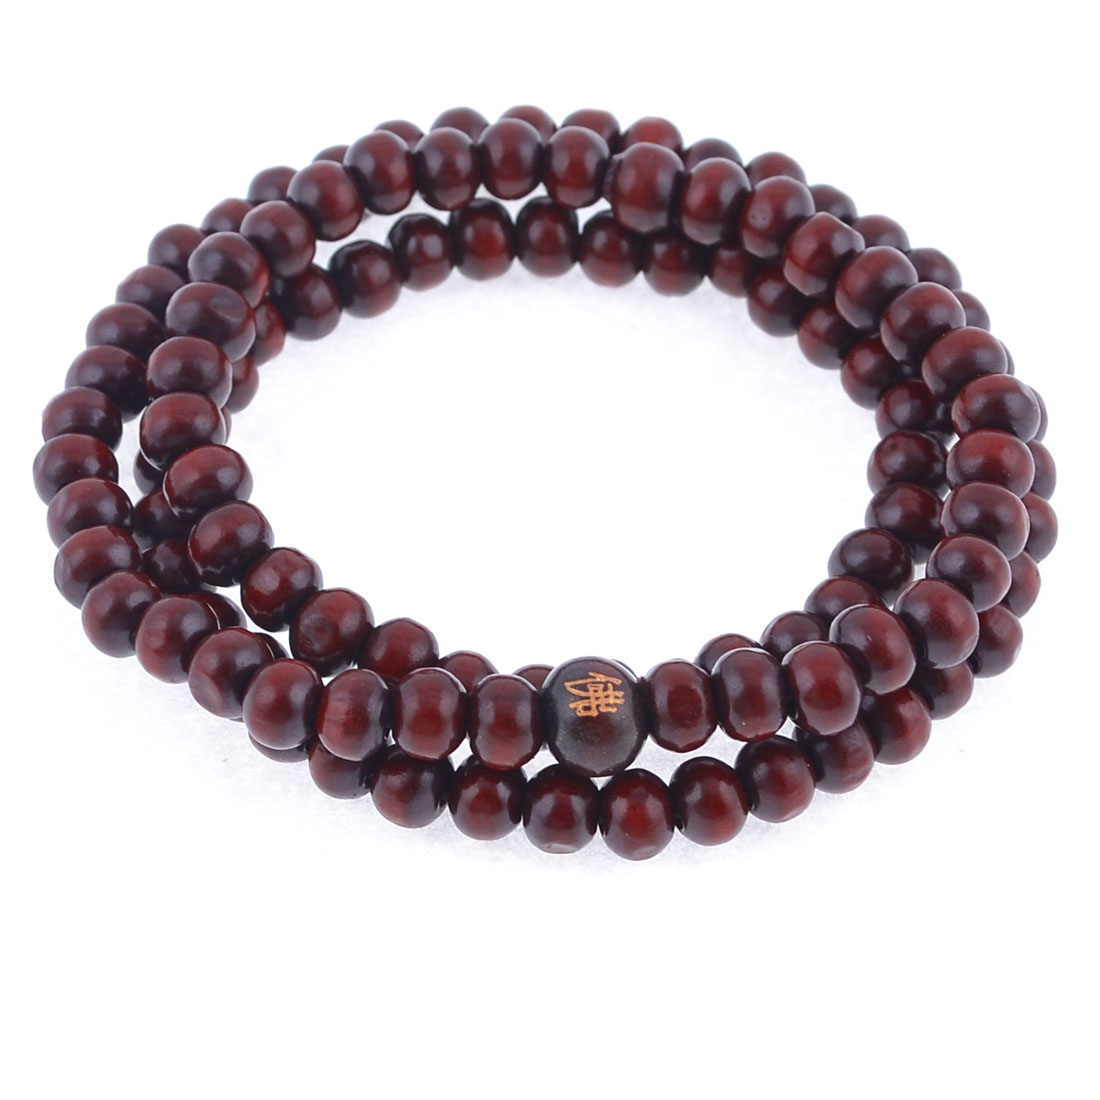 Stretch Strap 6mm Dia Beads Sandalwood Buddhist Prayer Necklace Red